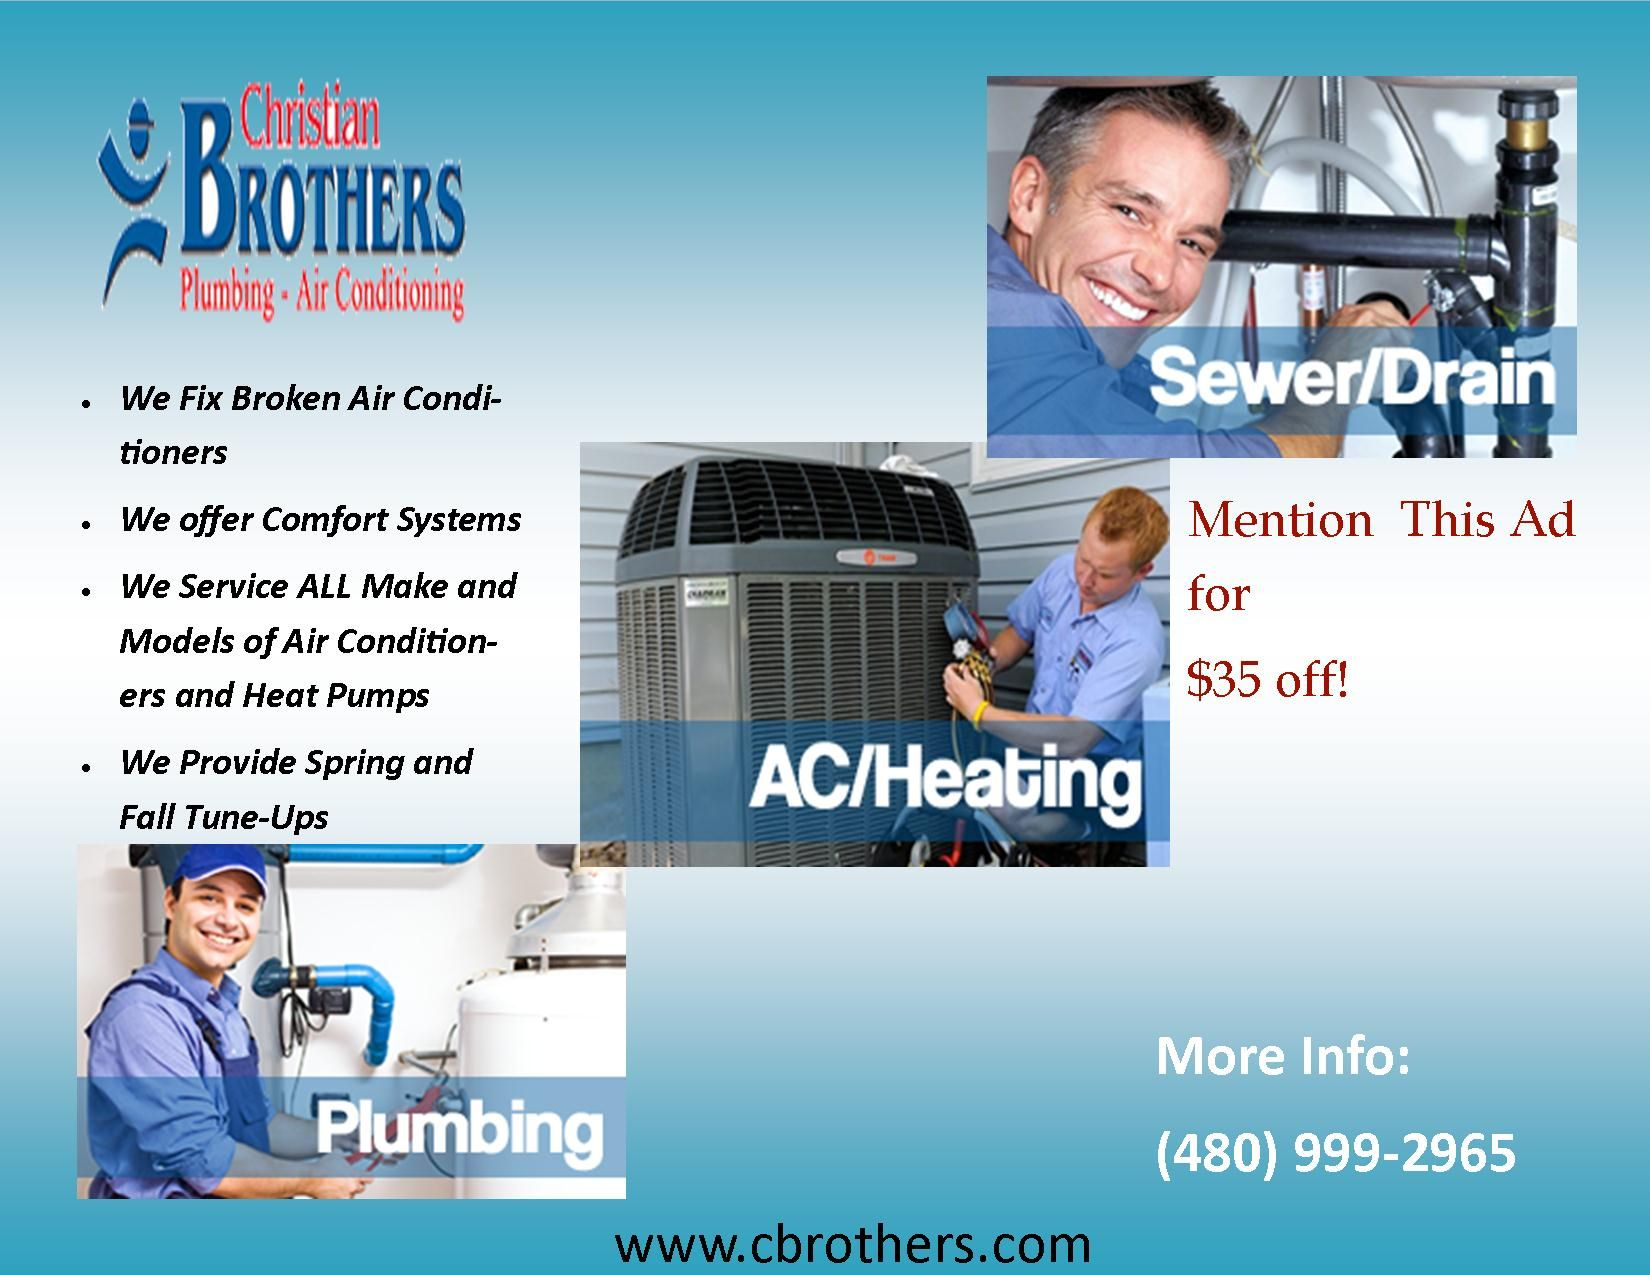 CHRISTIAN BROTHERS PLUMBING & AIR CONDITIONING